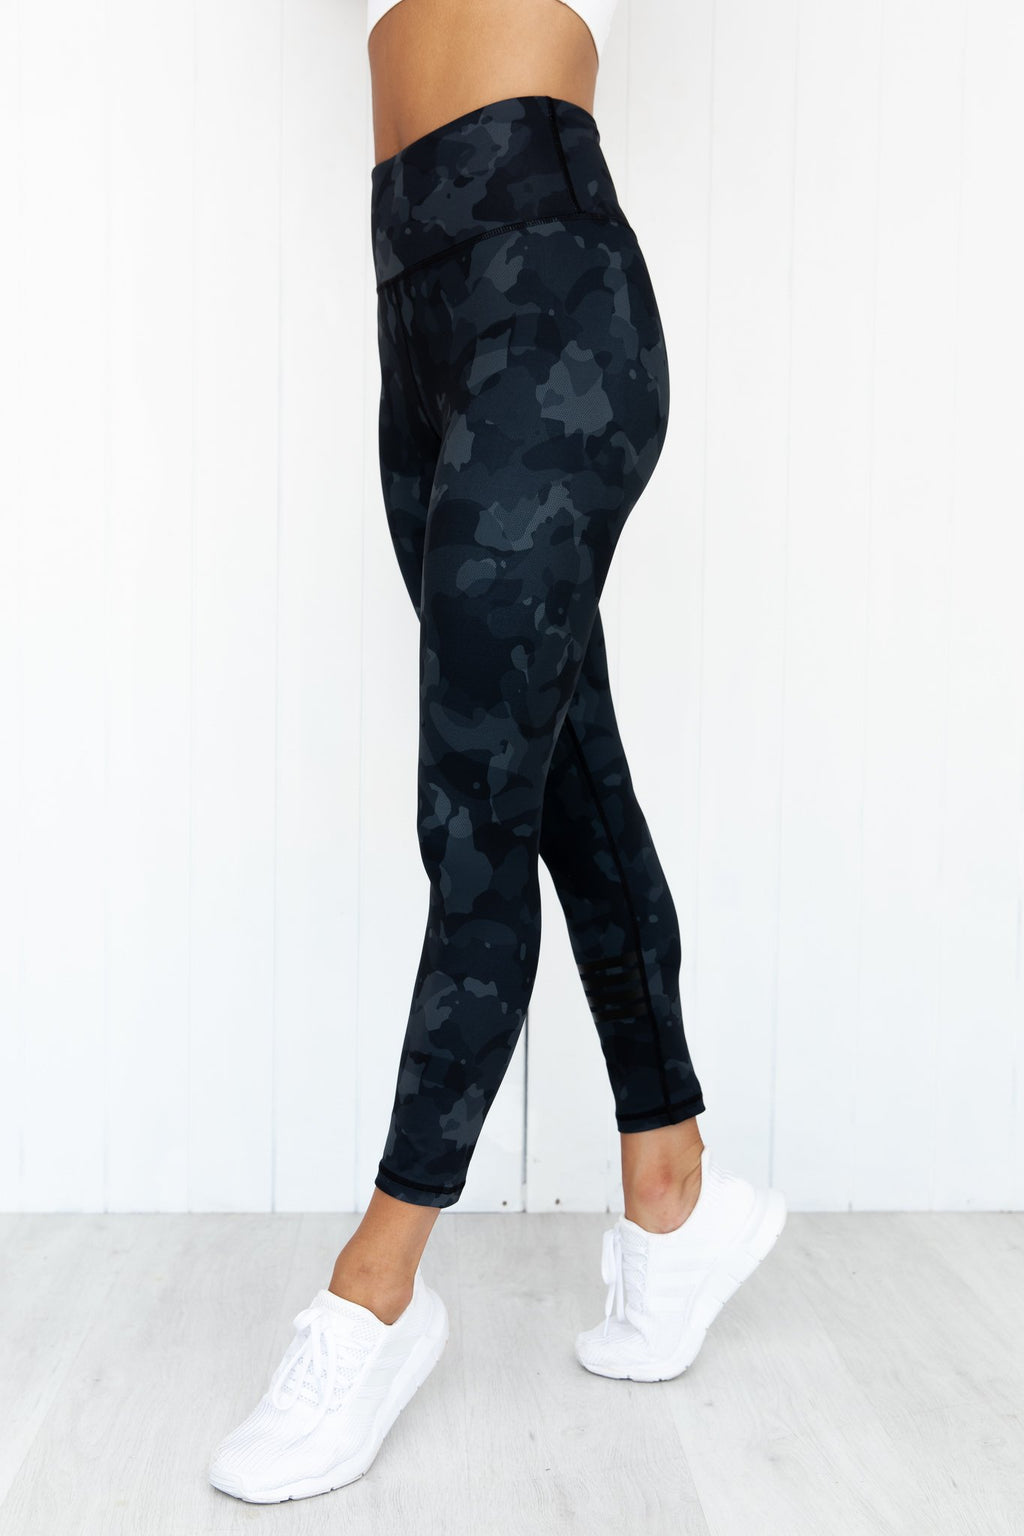 Dasha Tarmac Camo Leggings - PURE DASH